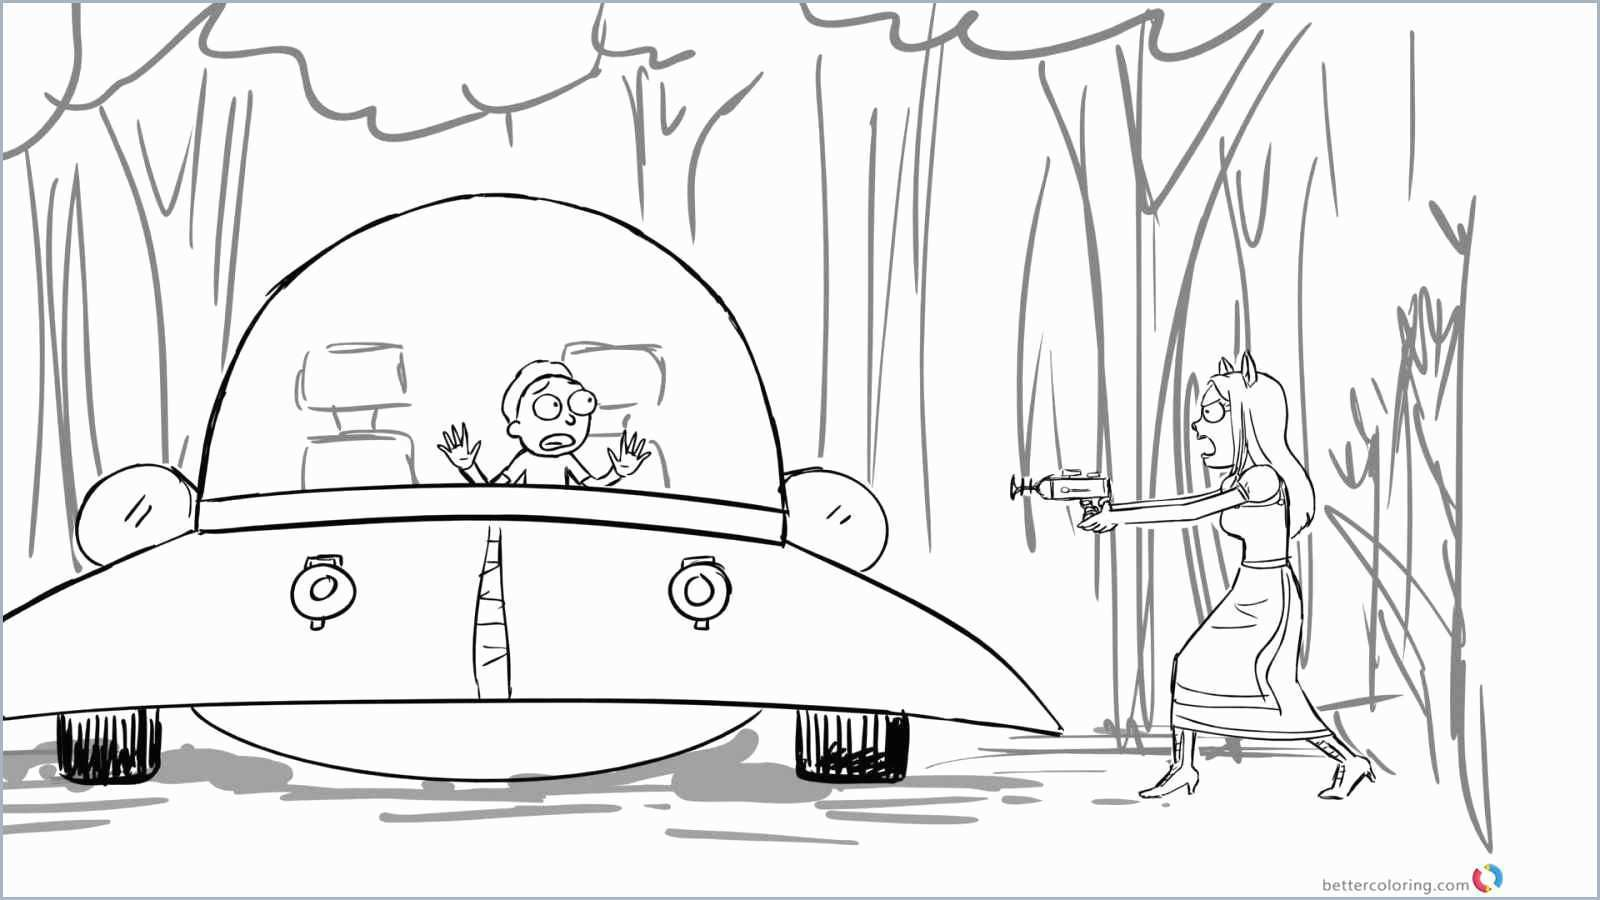 Rick And Morty Coloring Pages Rick And Morty Coloring Book Inspirational Rick And Morty Coloring